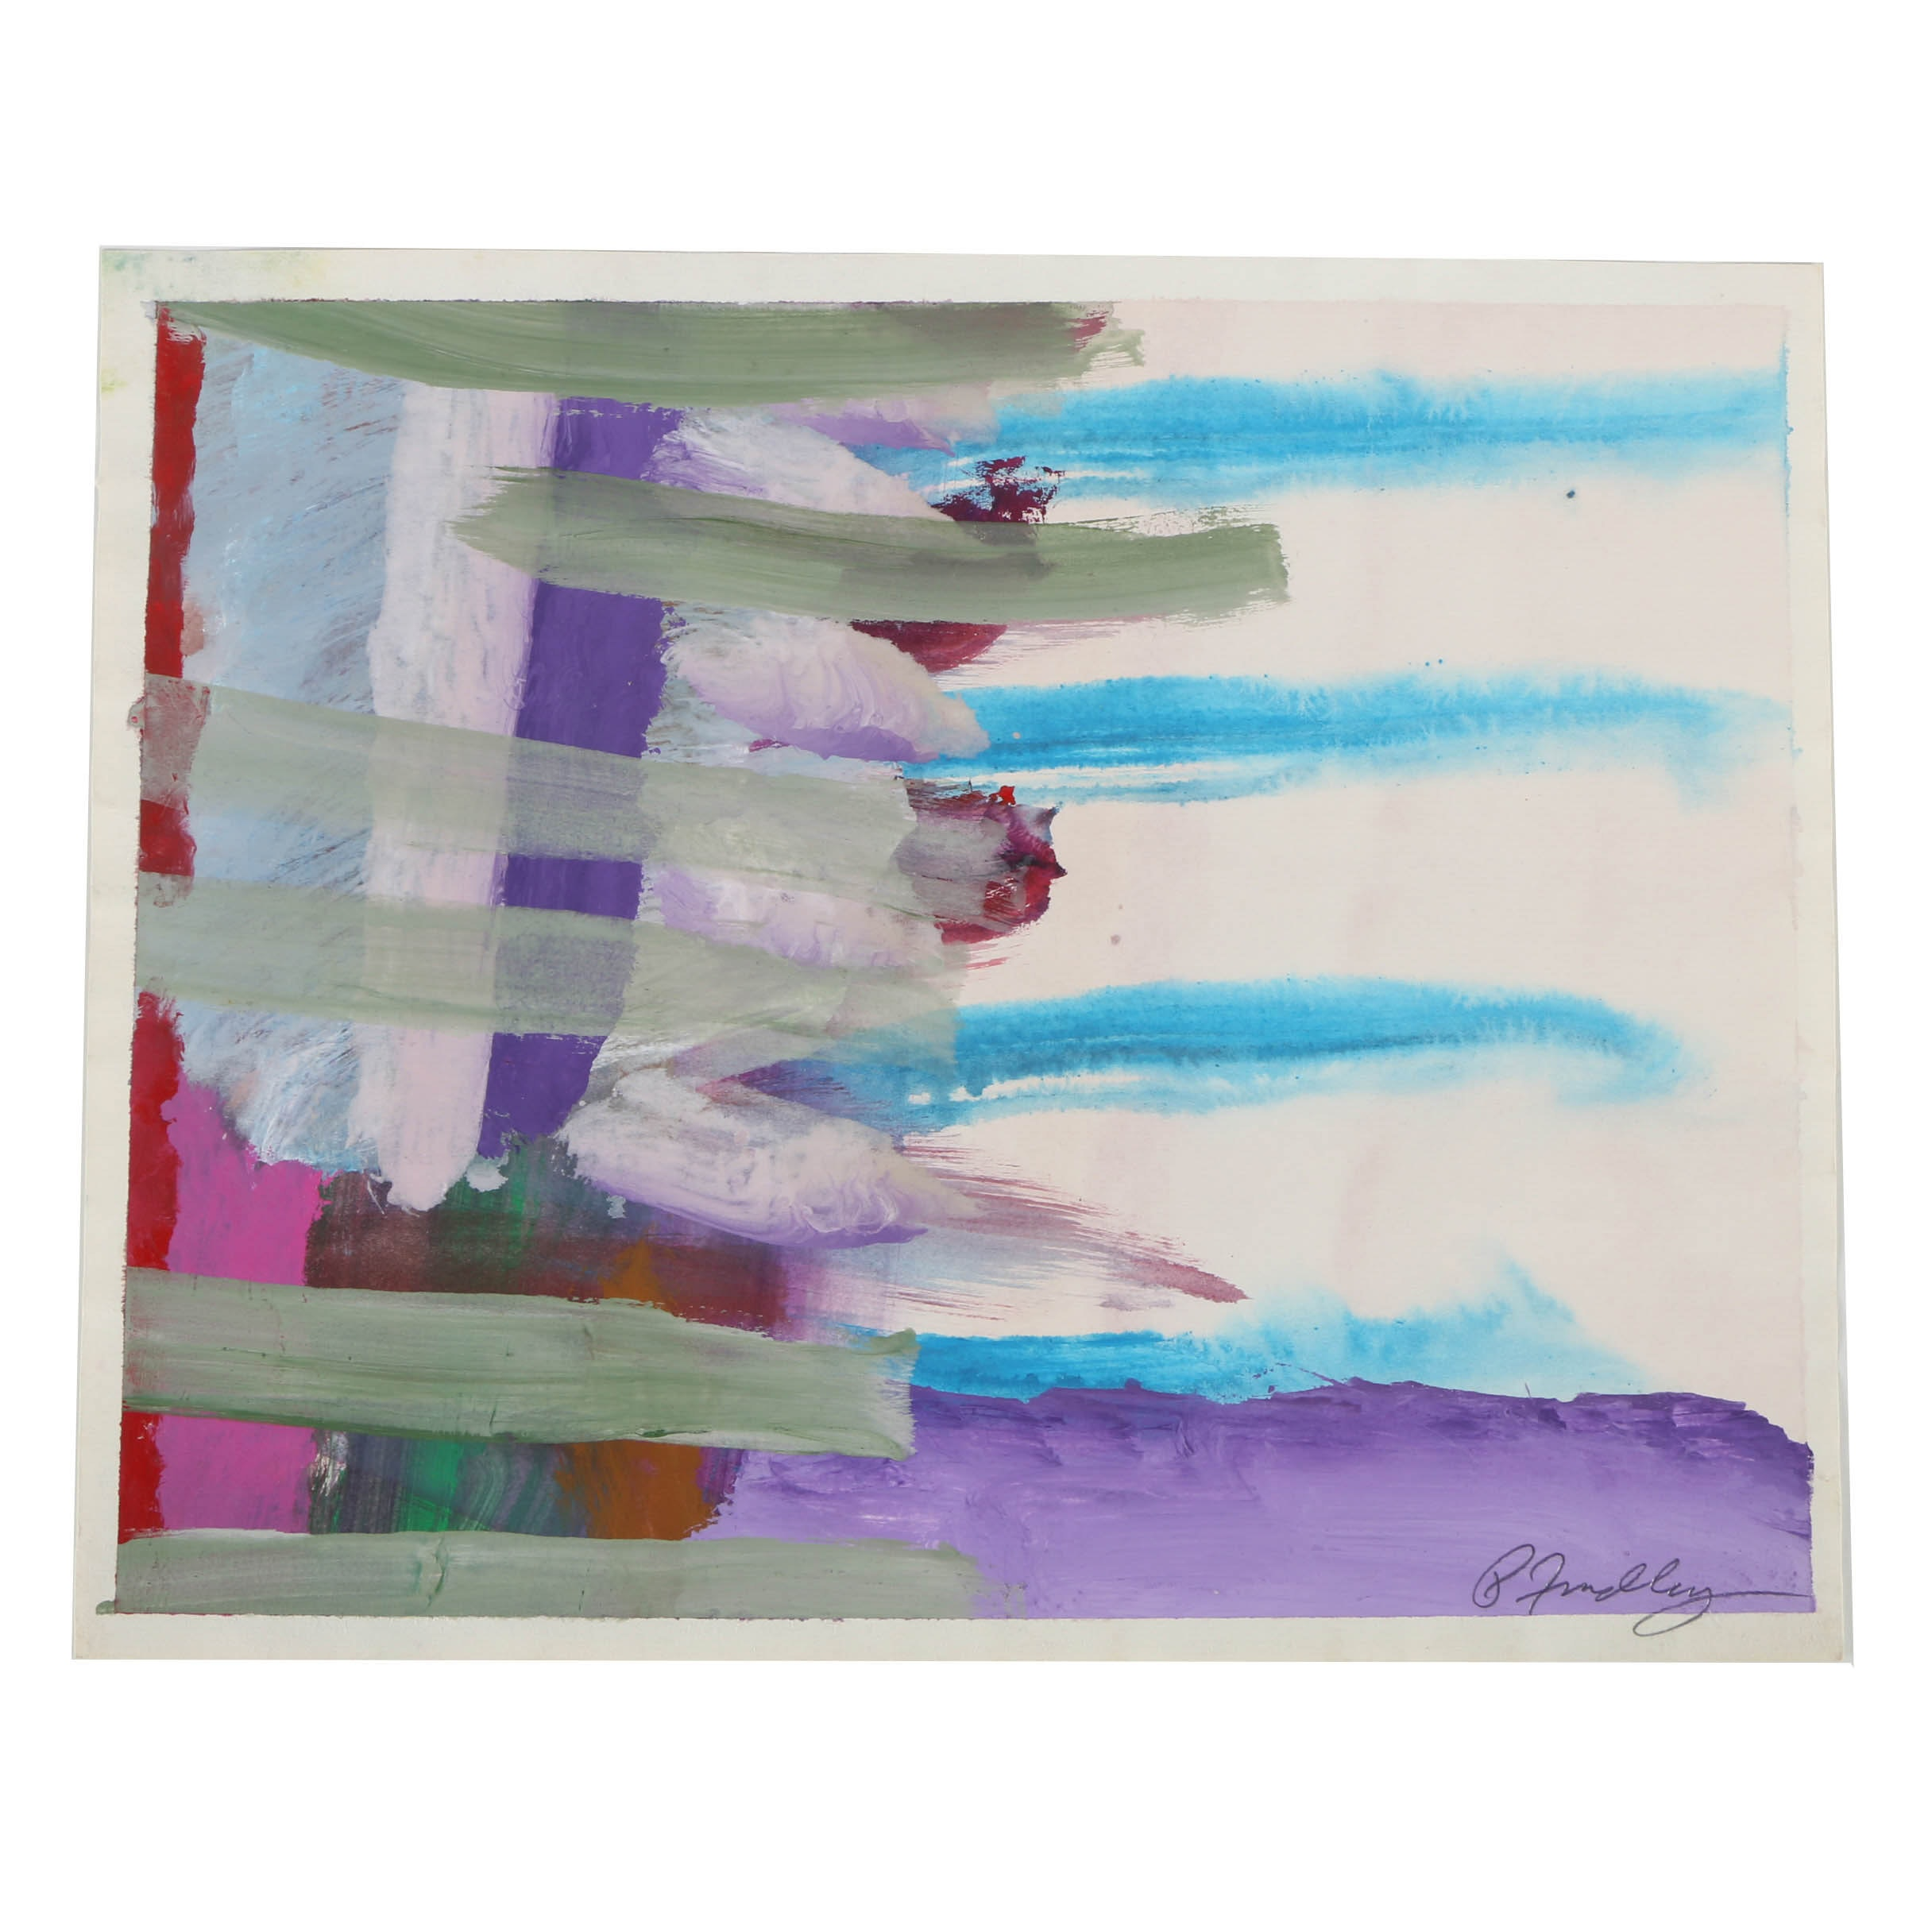 Paul Findlay Mixed Media Painting on Paper Abstract Composition